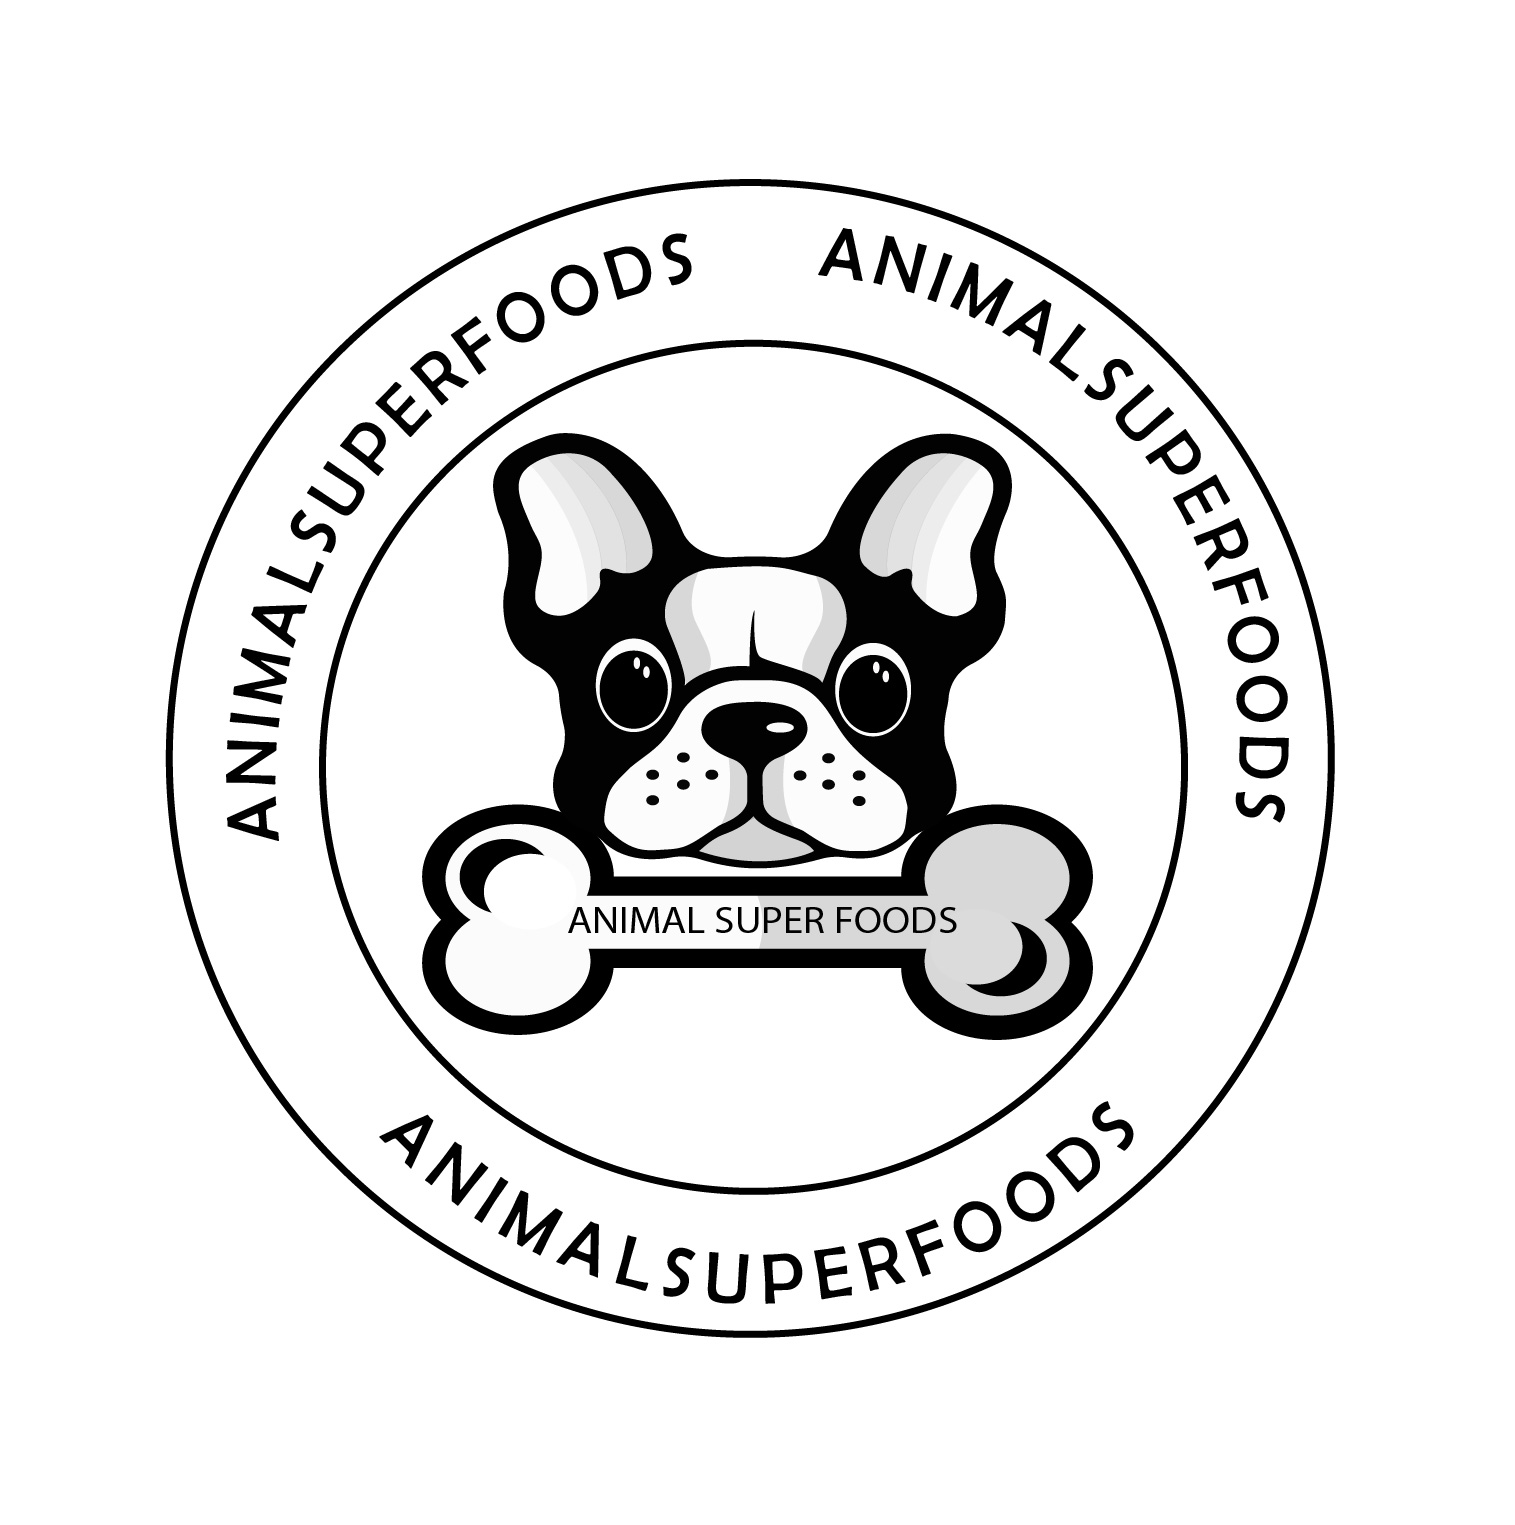 Animal Super Foods